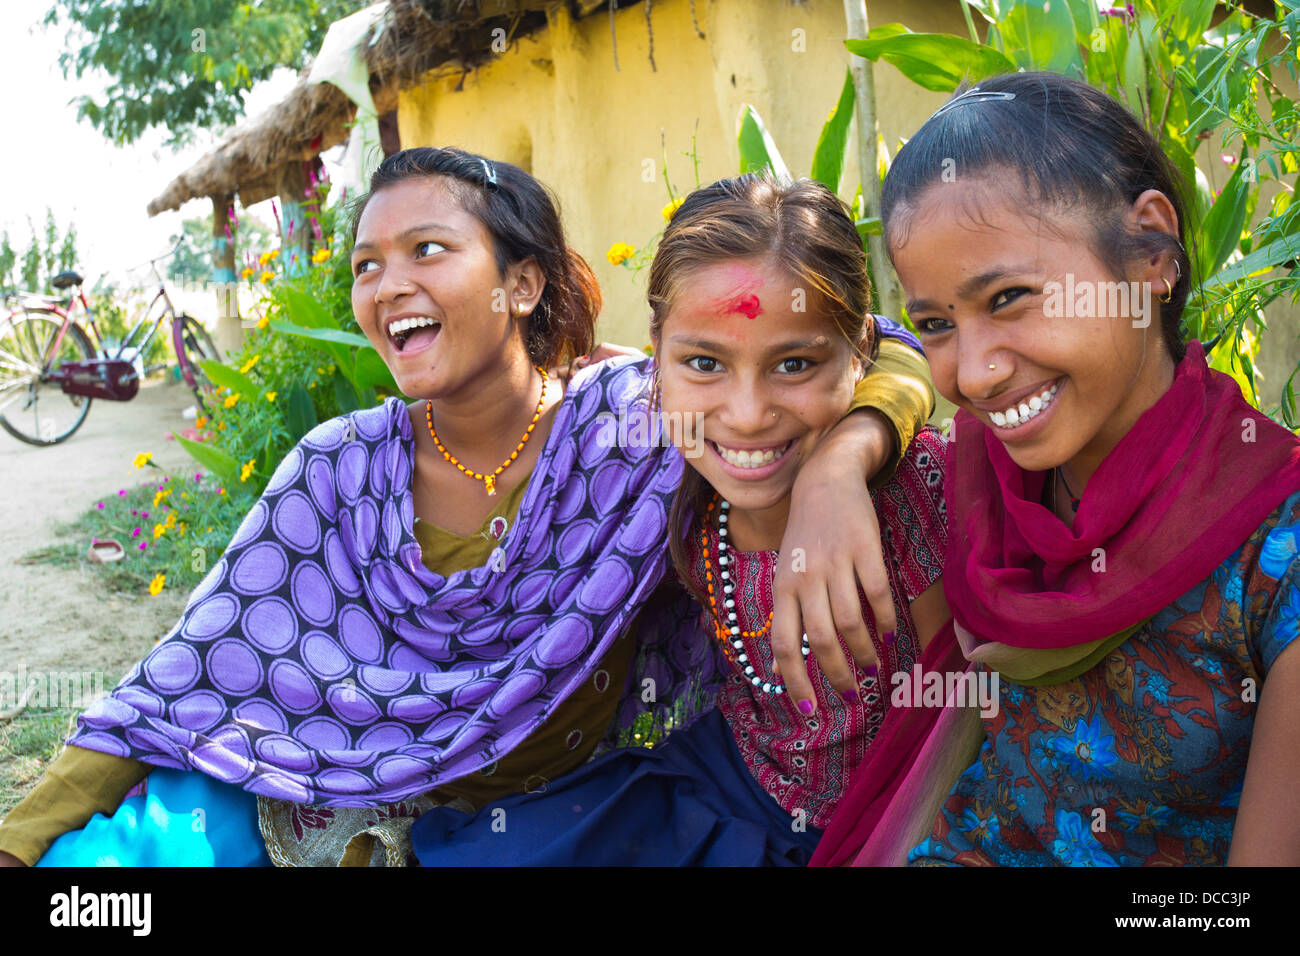 Rural nepal stock photos rural nepal stock images alamy three happy young nepalese girls smiling in a rural terai village nepal stock image ccuart Gallery